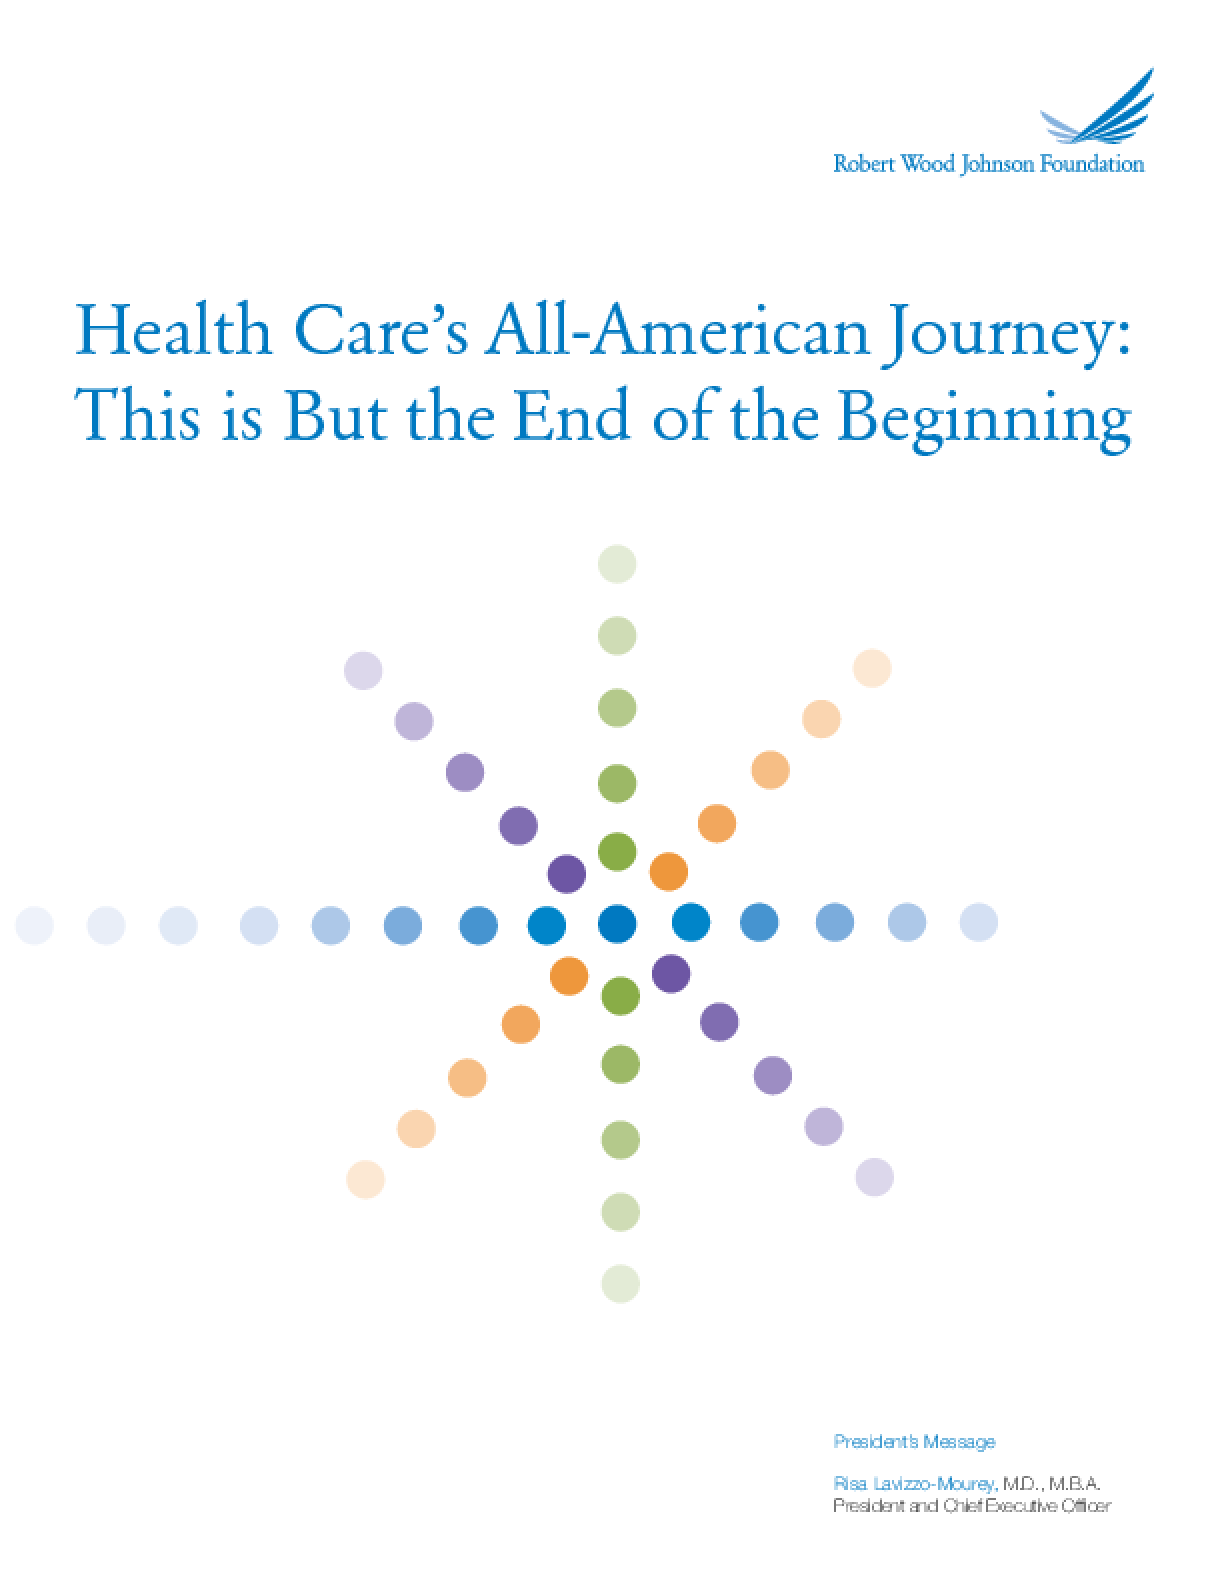 Robert Wood Johnson Foundation 2009 Annual Report: Health Care's All-American Journey